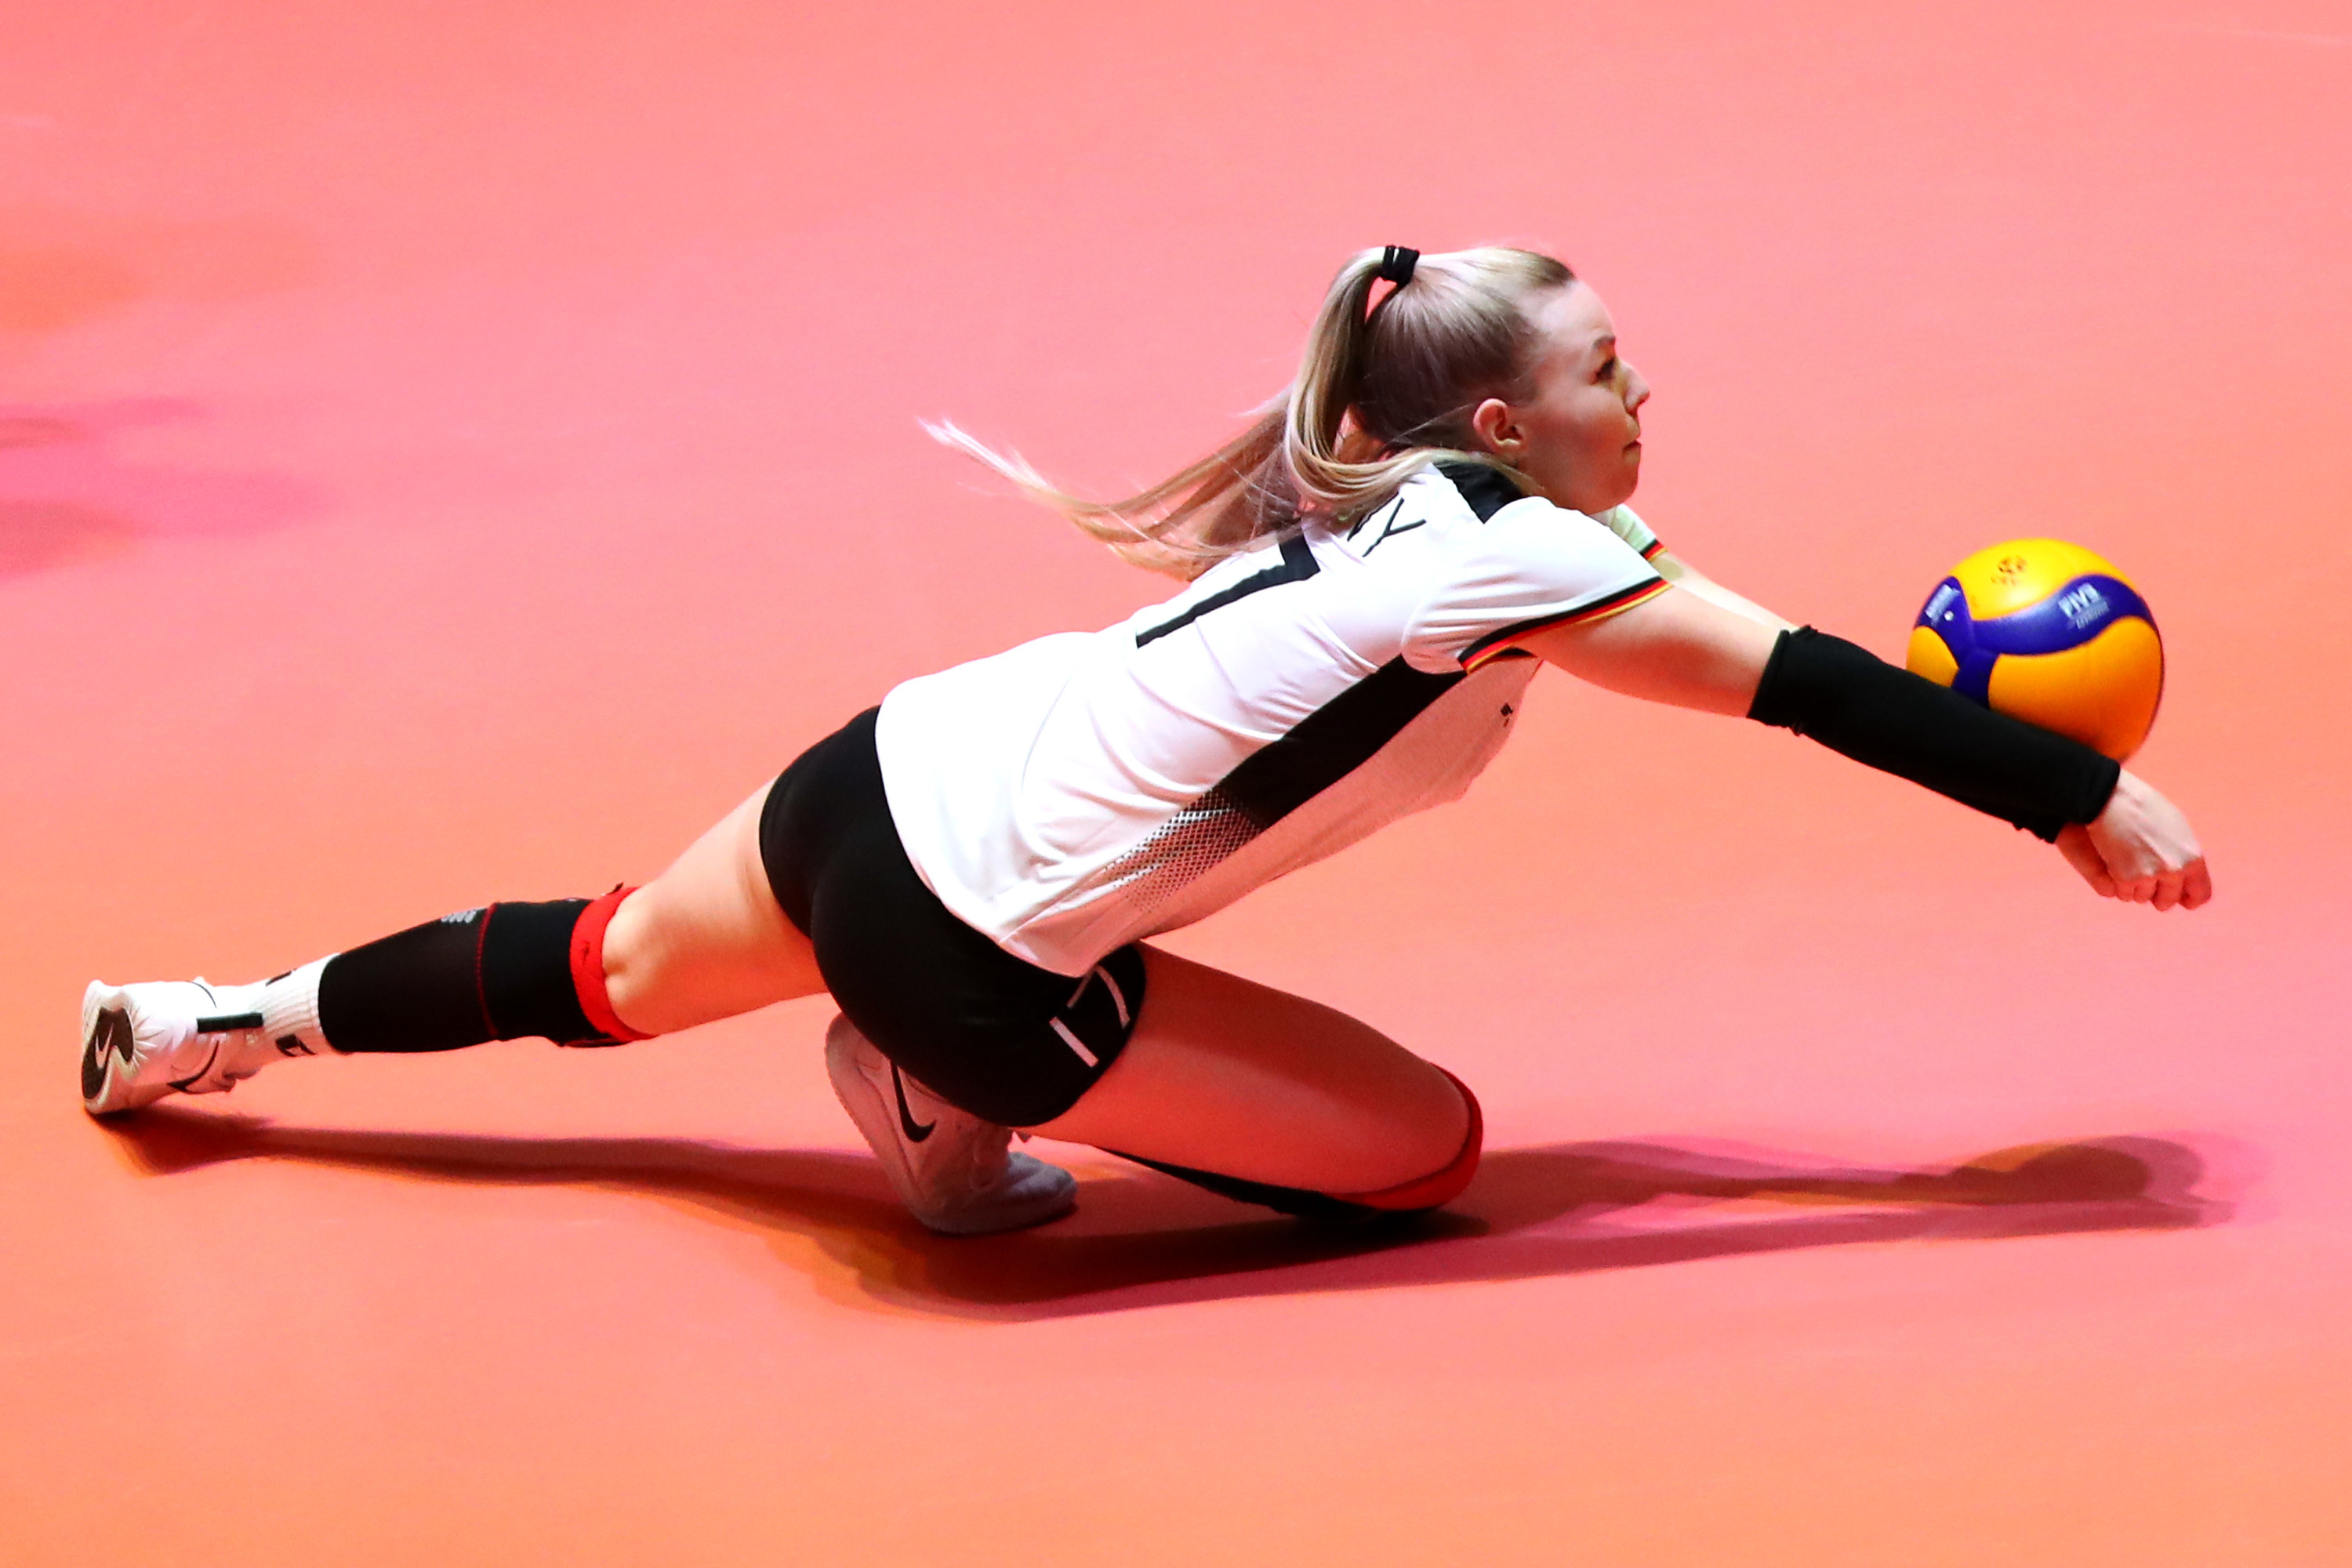 Volleyball player making a diving save